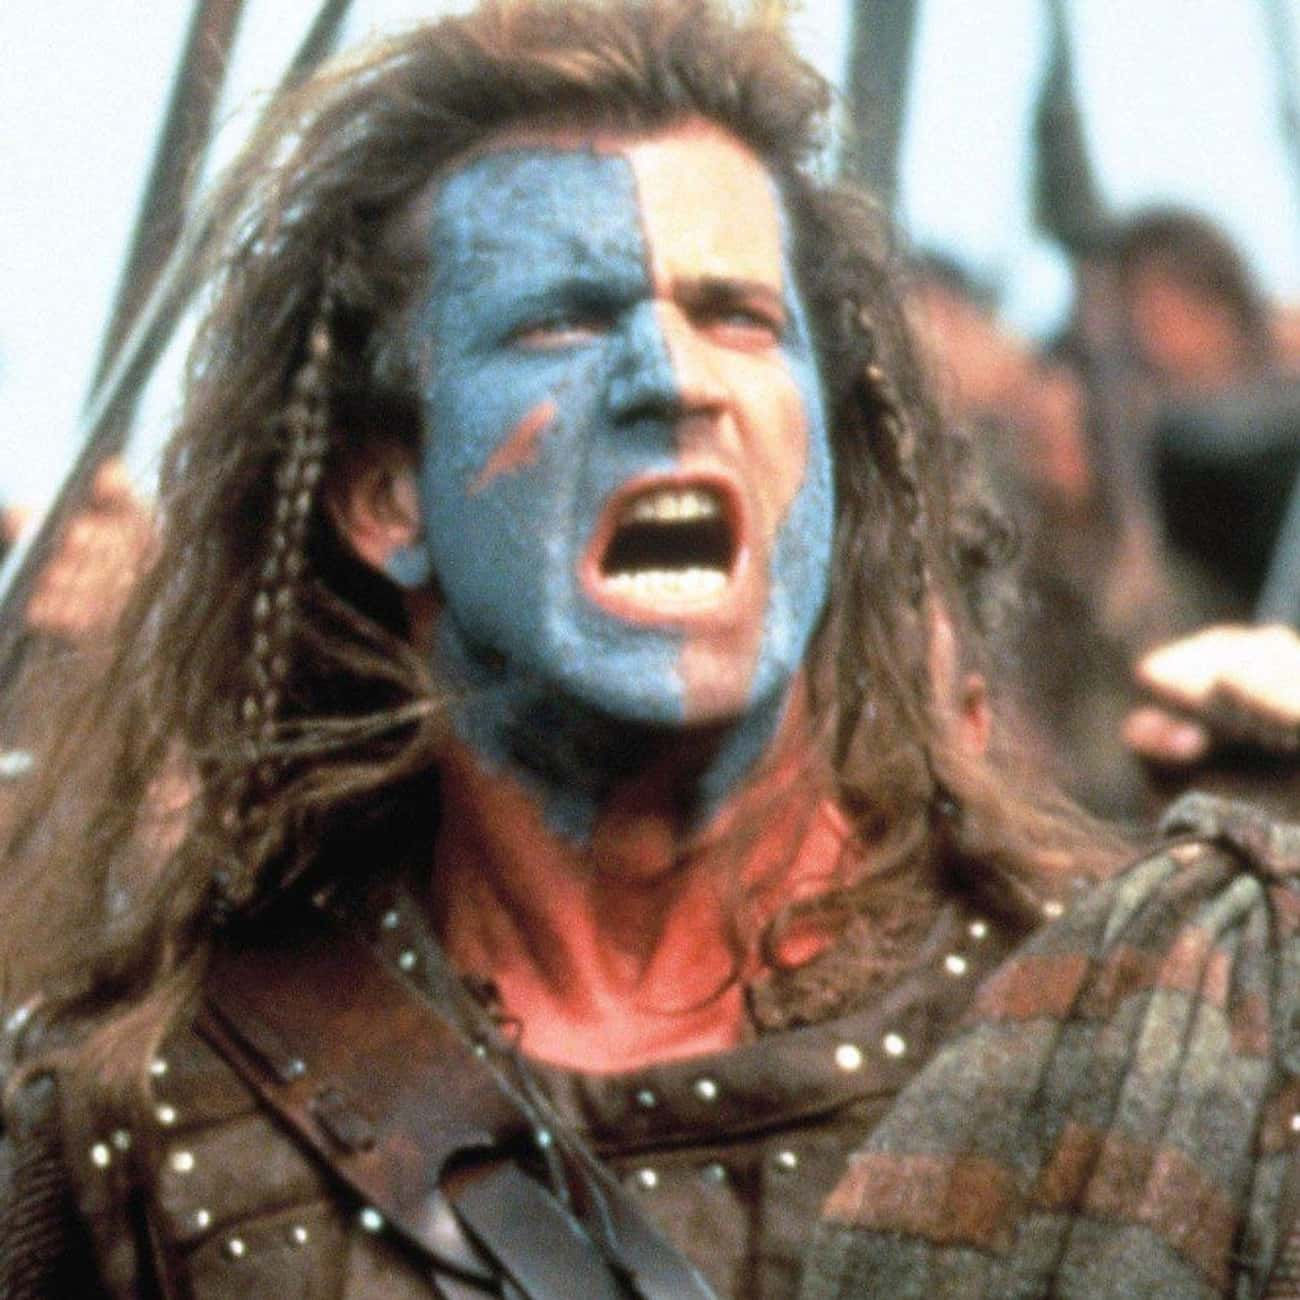 Braveheart is listed (or ranked) 4 on the list The '90s Movies That Stuck with You the Most